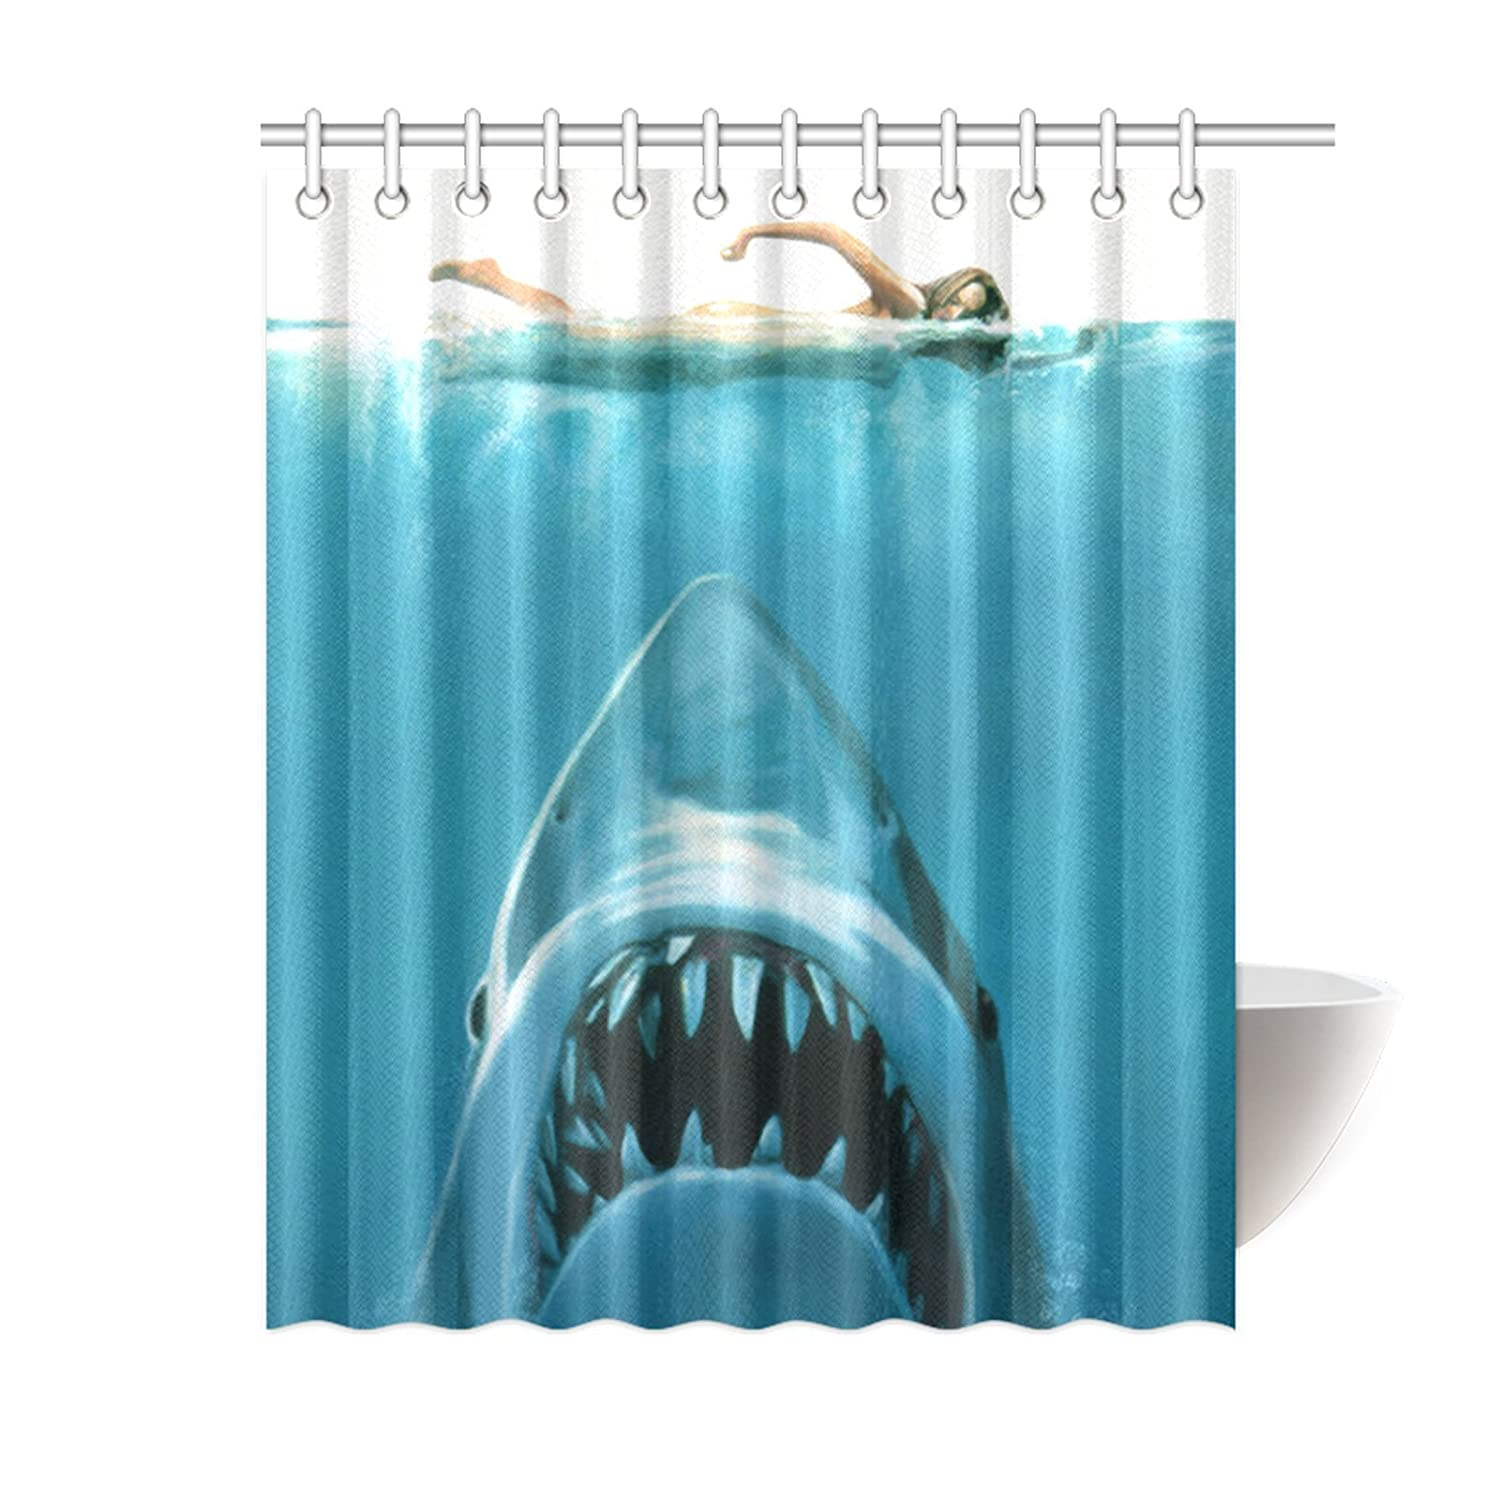 Cool shower curtains for kids - Cool Shower Curtains For Kids Cool Shower Curtains Amazon Kids Shark Shower Curtain Amazon Com